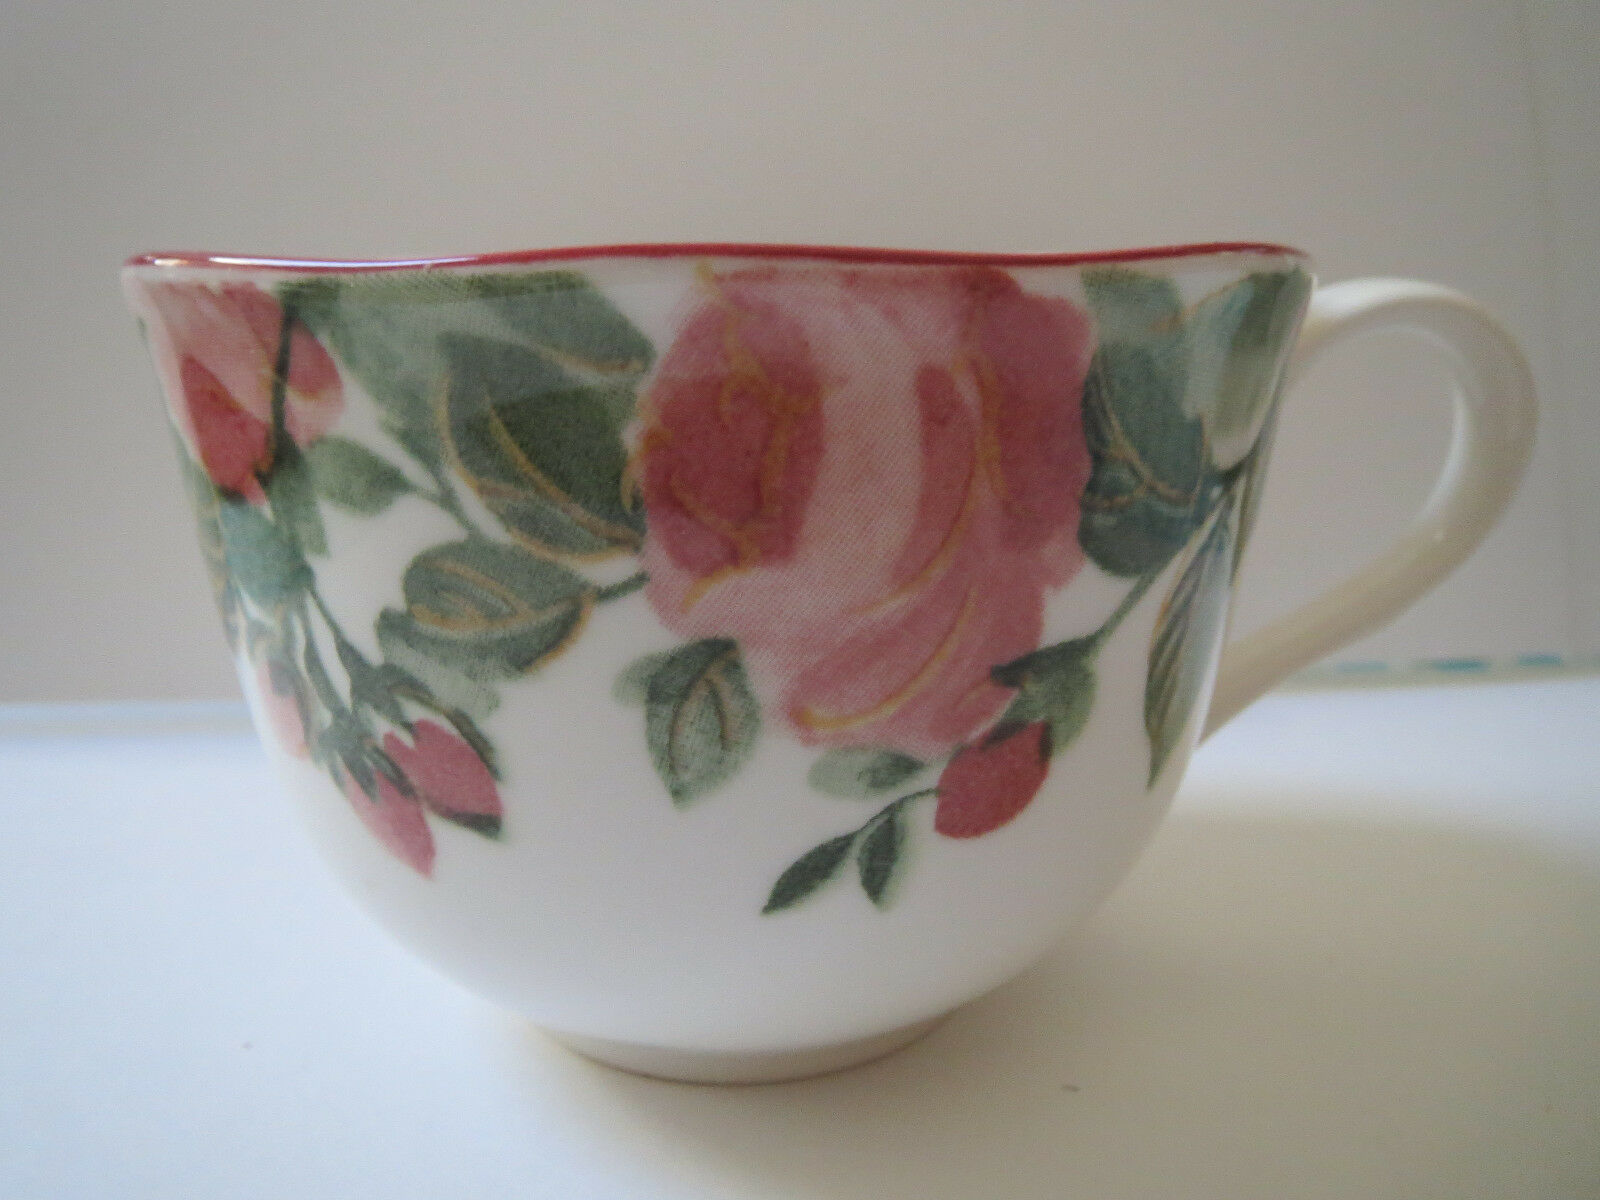 NIKKO TABLEWARE - NIKKO TEACUP AND SAUCER - JAPAN PRECIOUS PATTERN